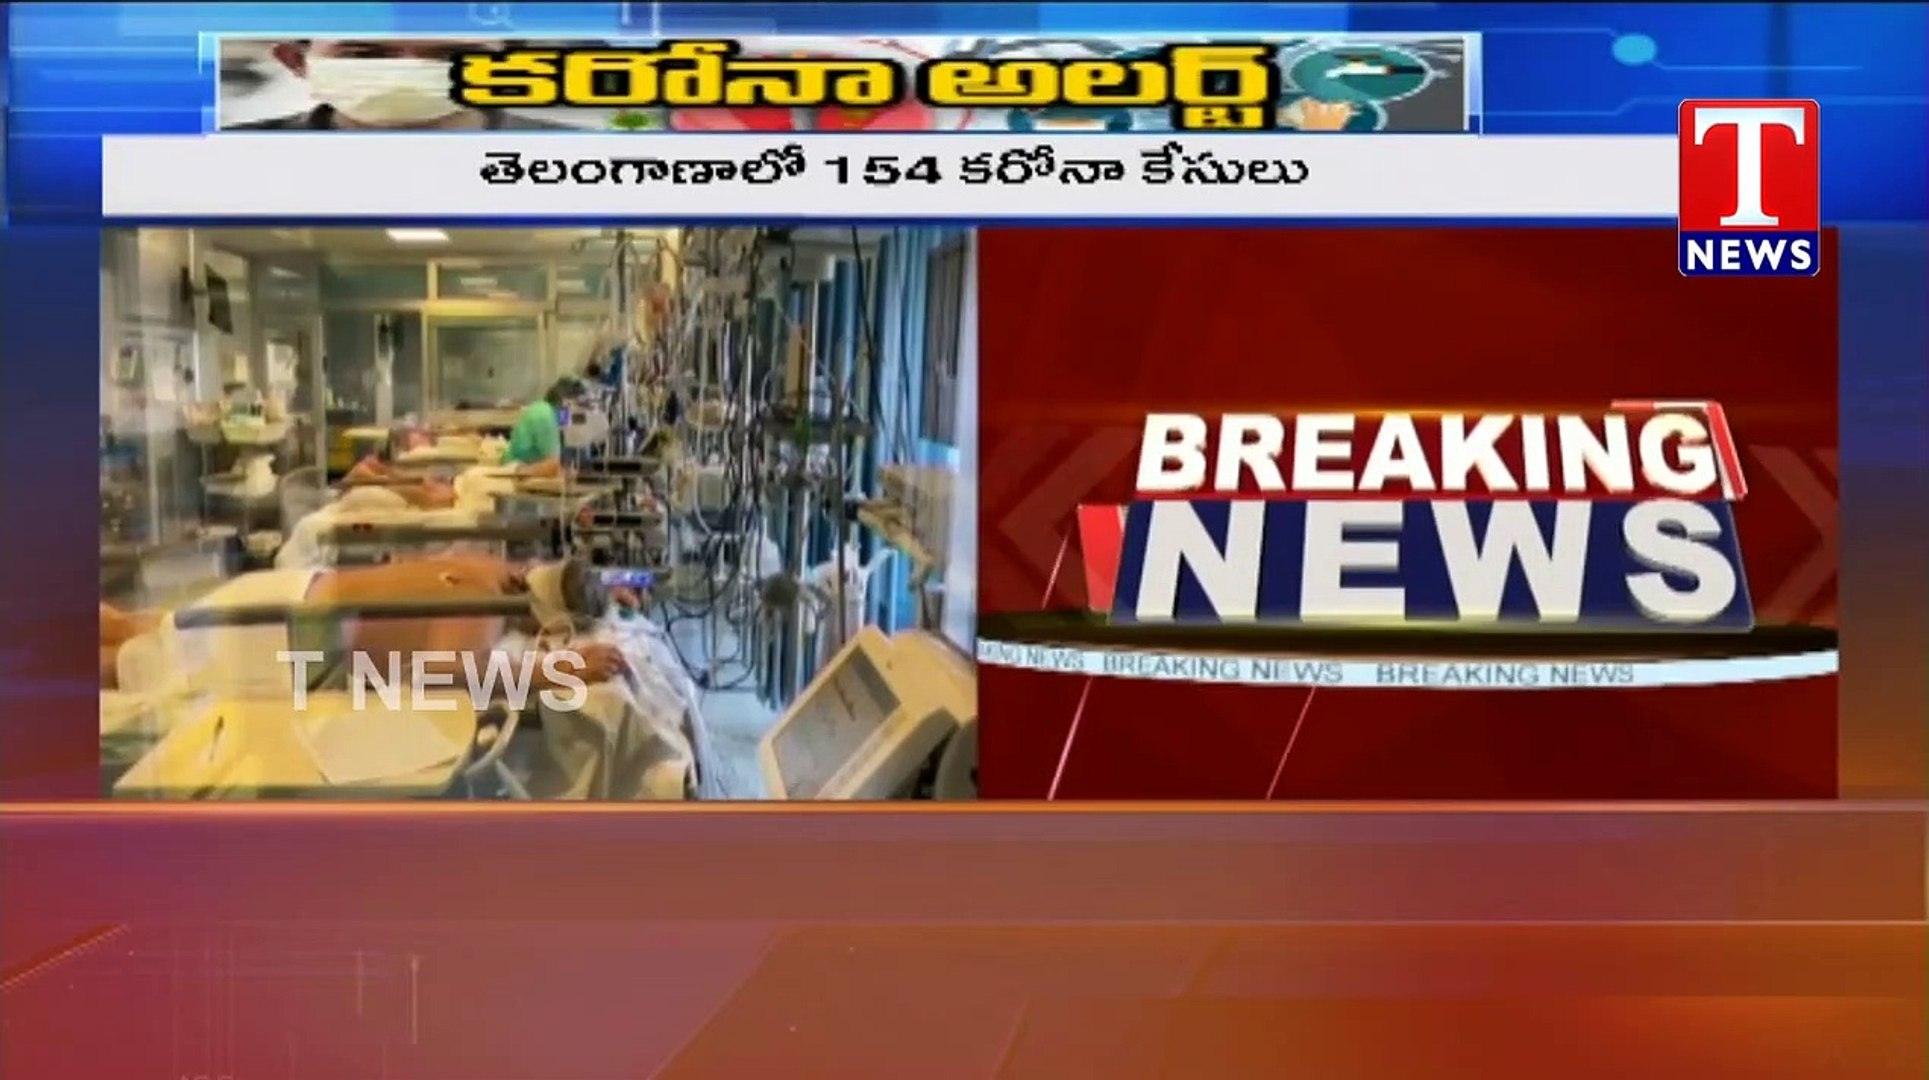 Coronavirus News updates in India _ news Telugu_HD